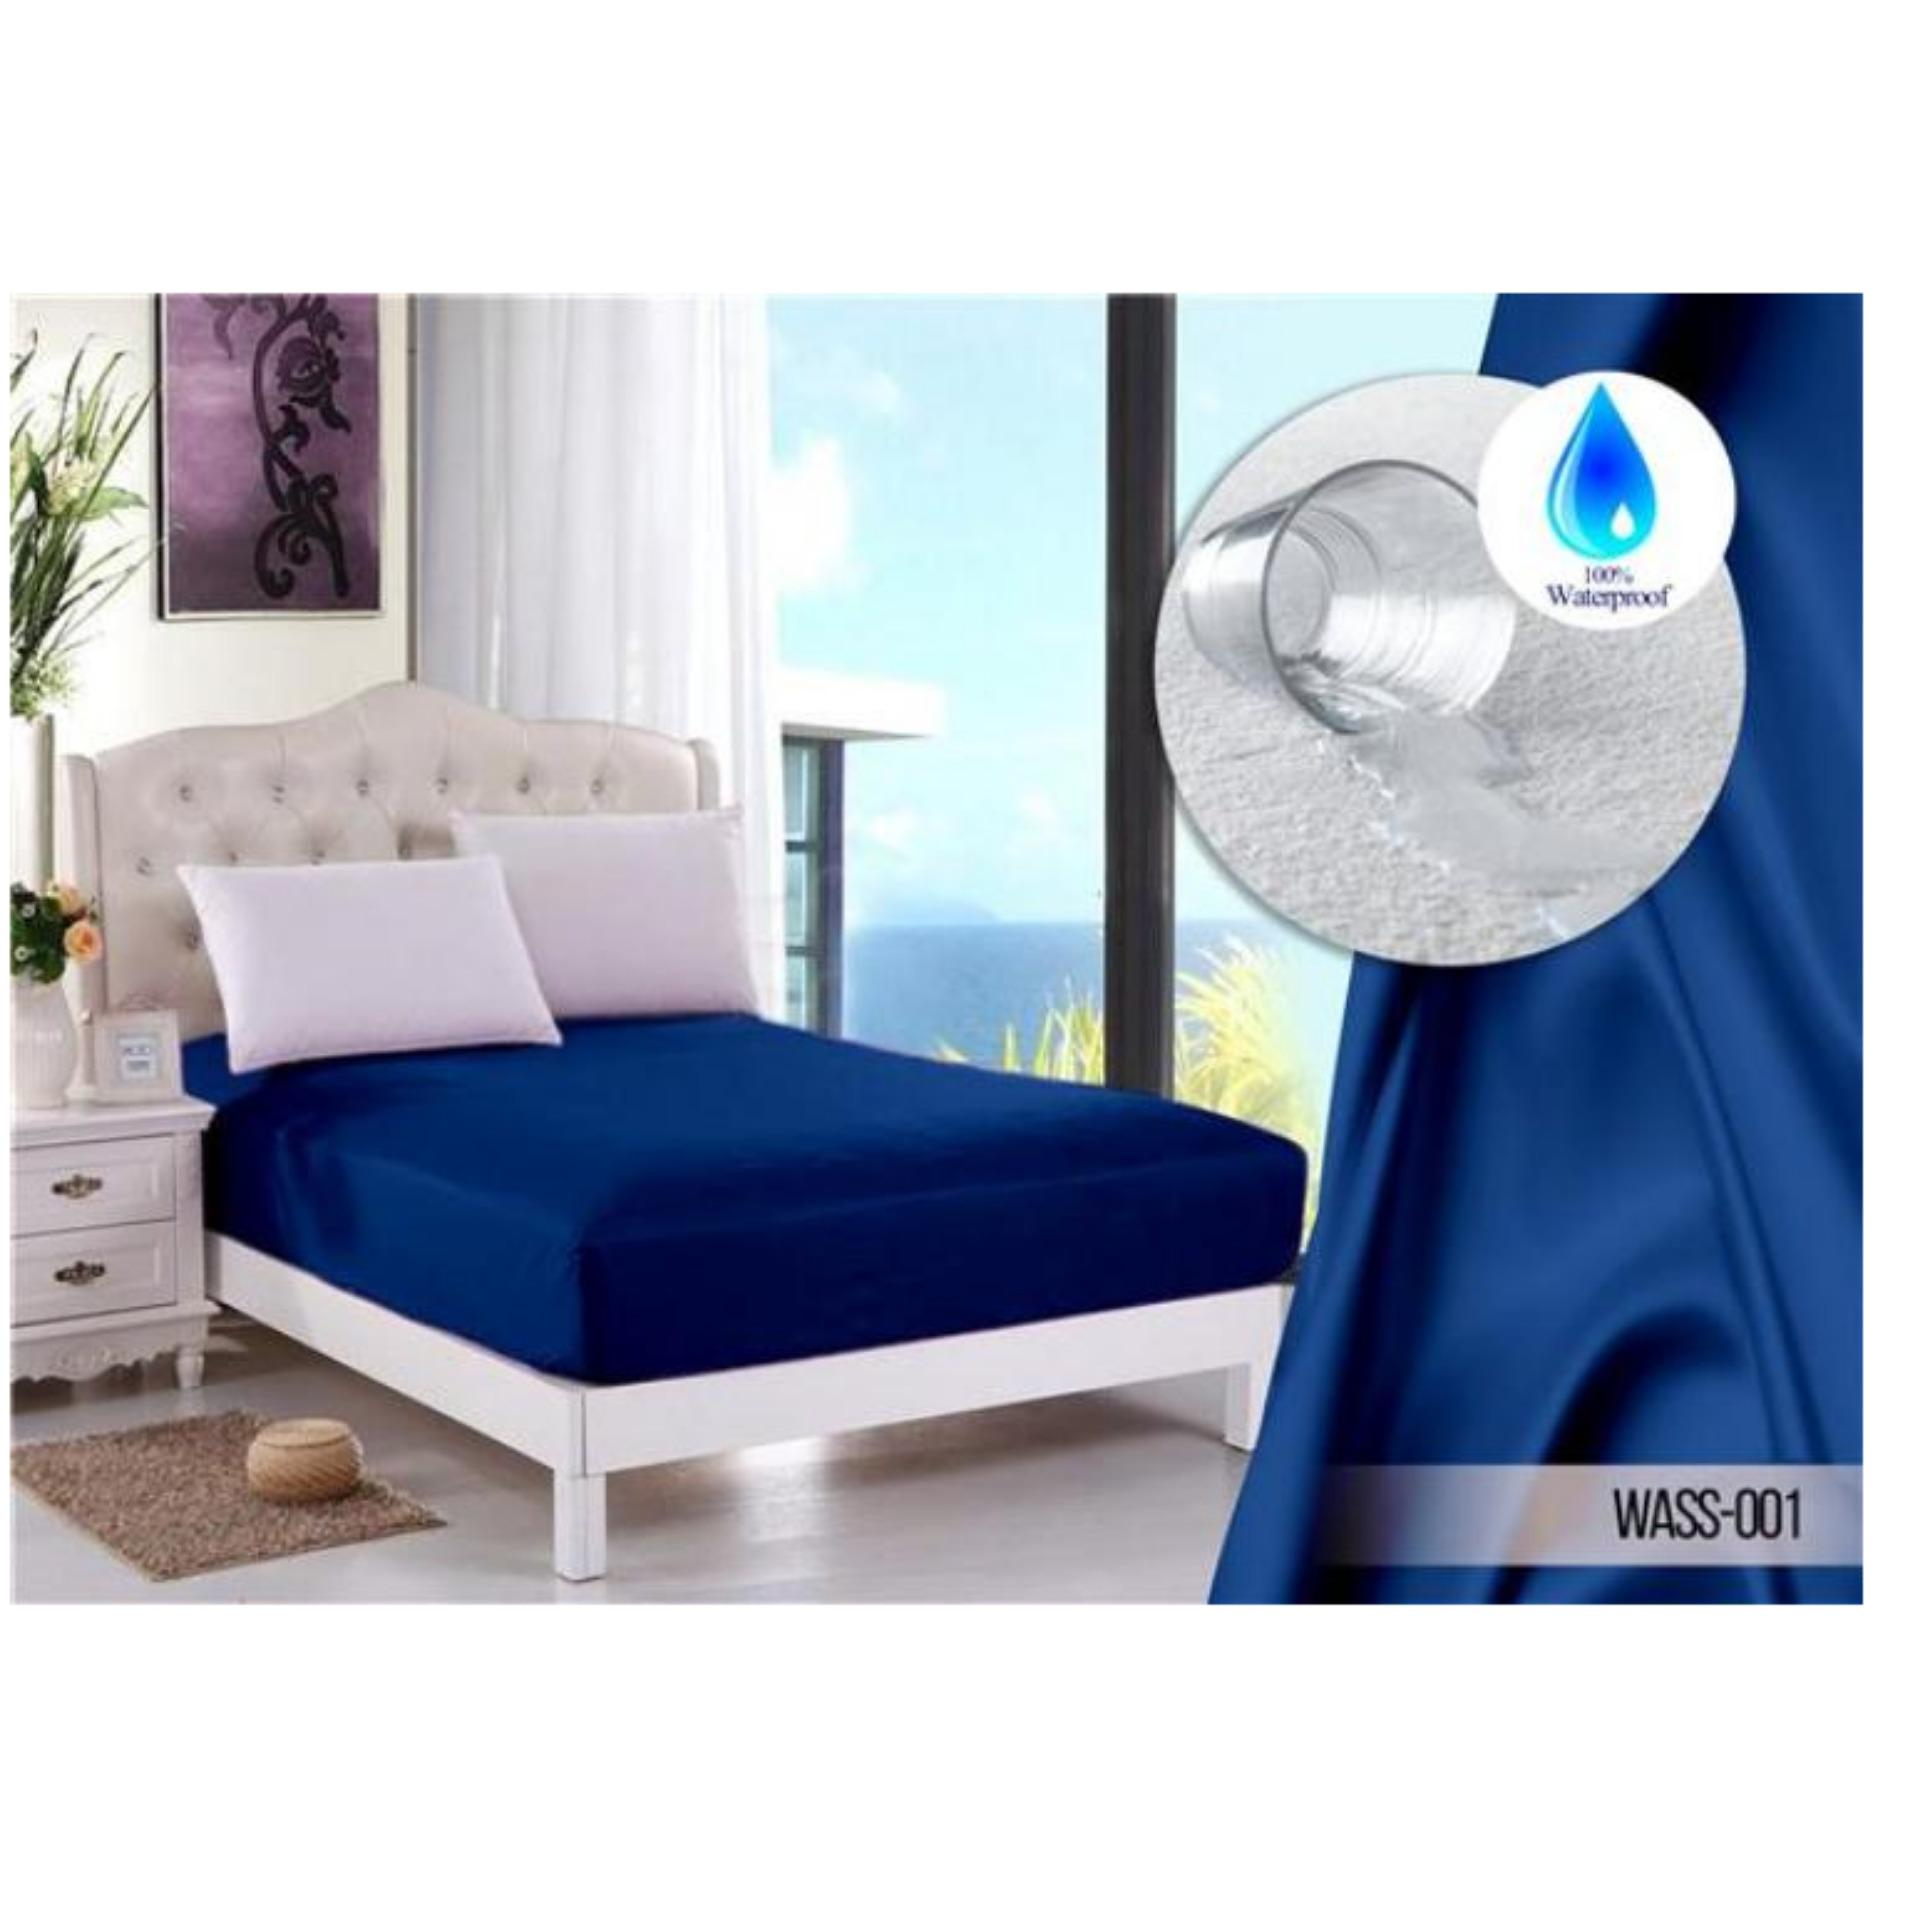 Review Jaxine Sprei Waterproof Anti Air Biru Tua Terbaru